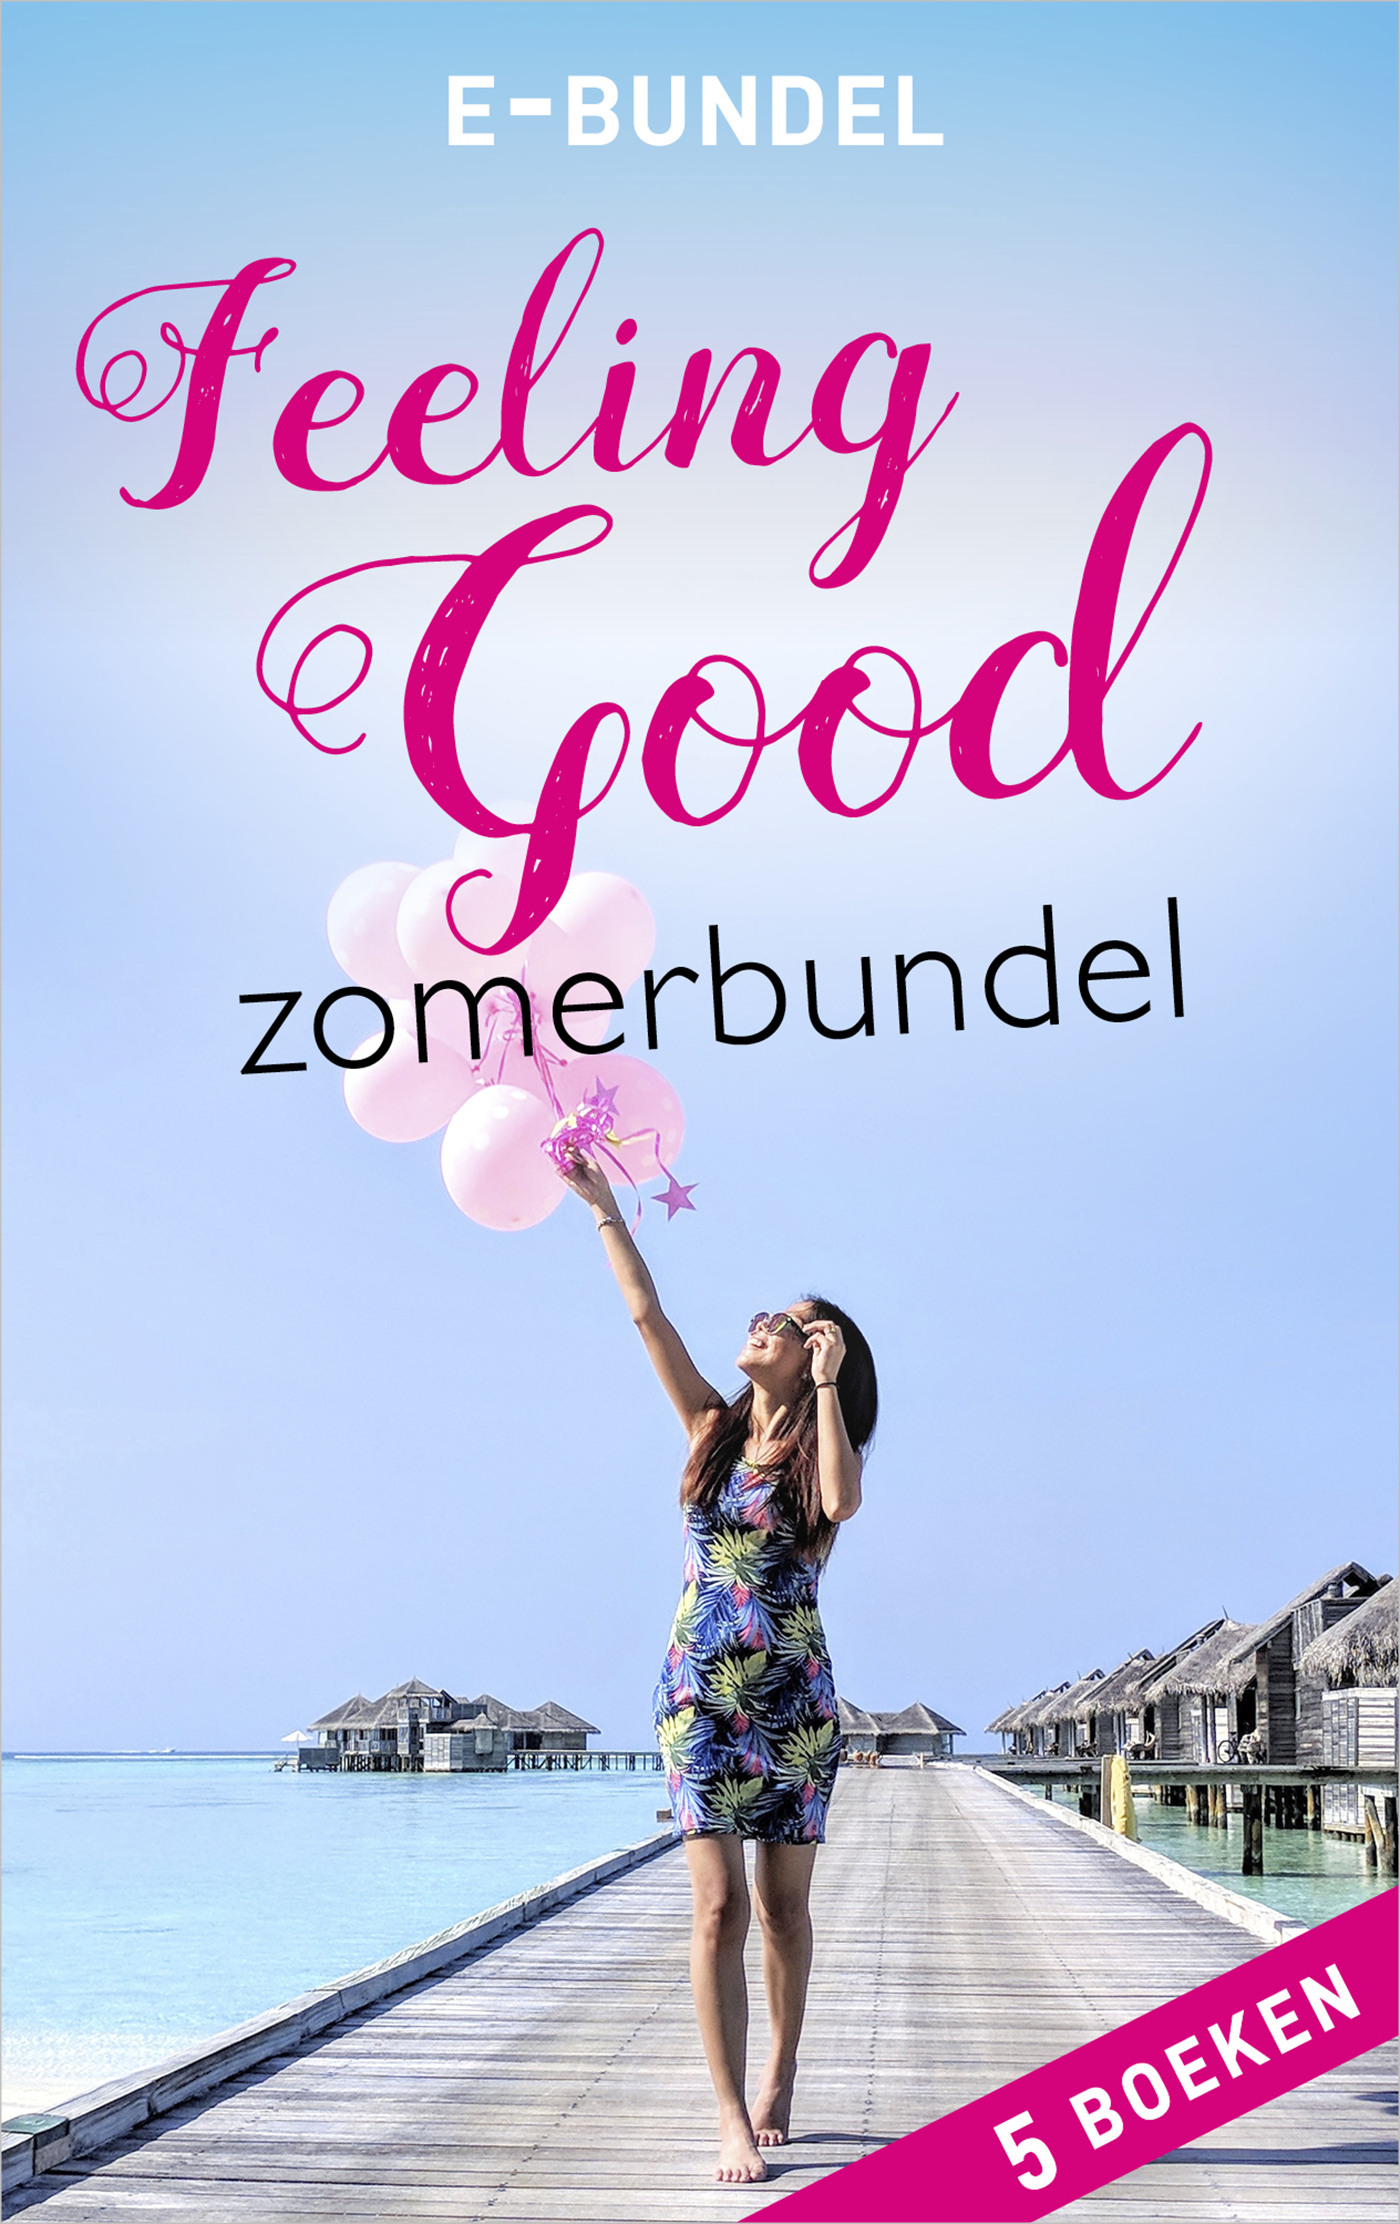 Feeling good-zomerbundel